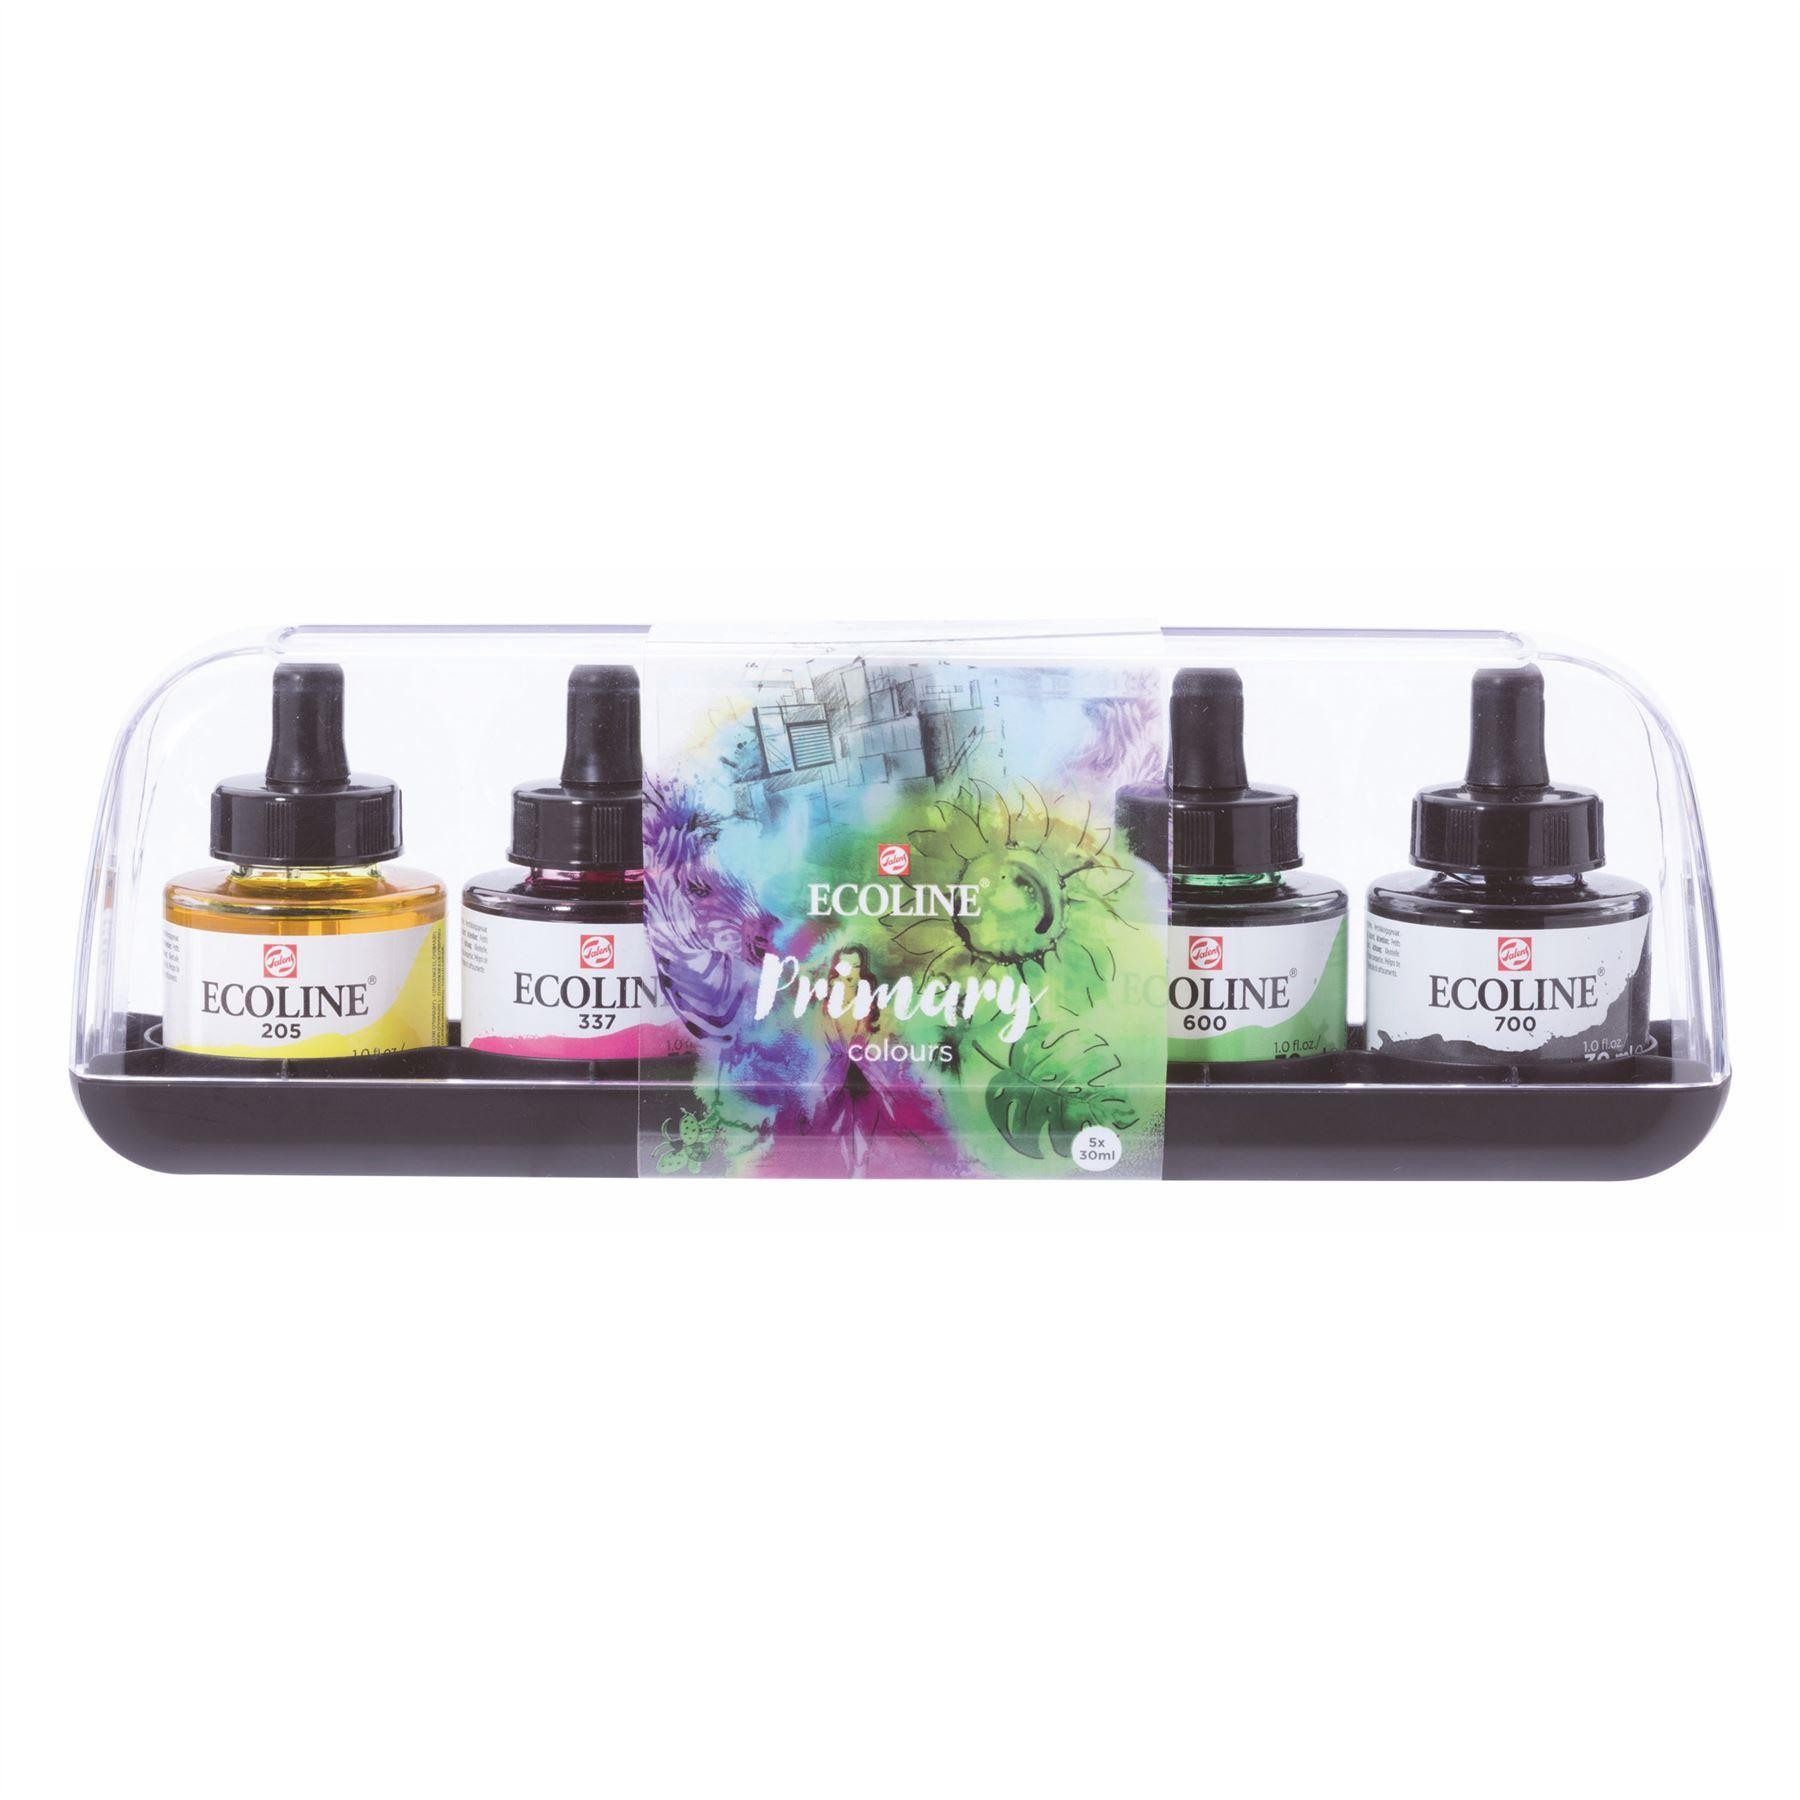 Talens ecoline liquid watercolour primary set